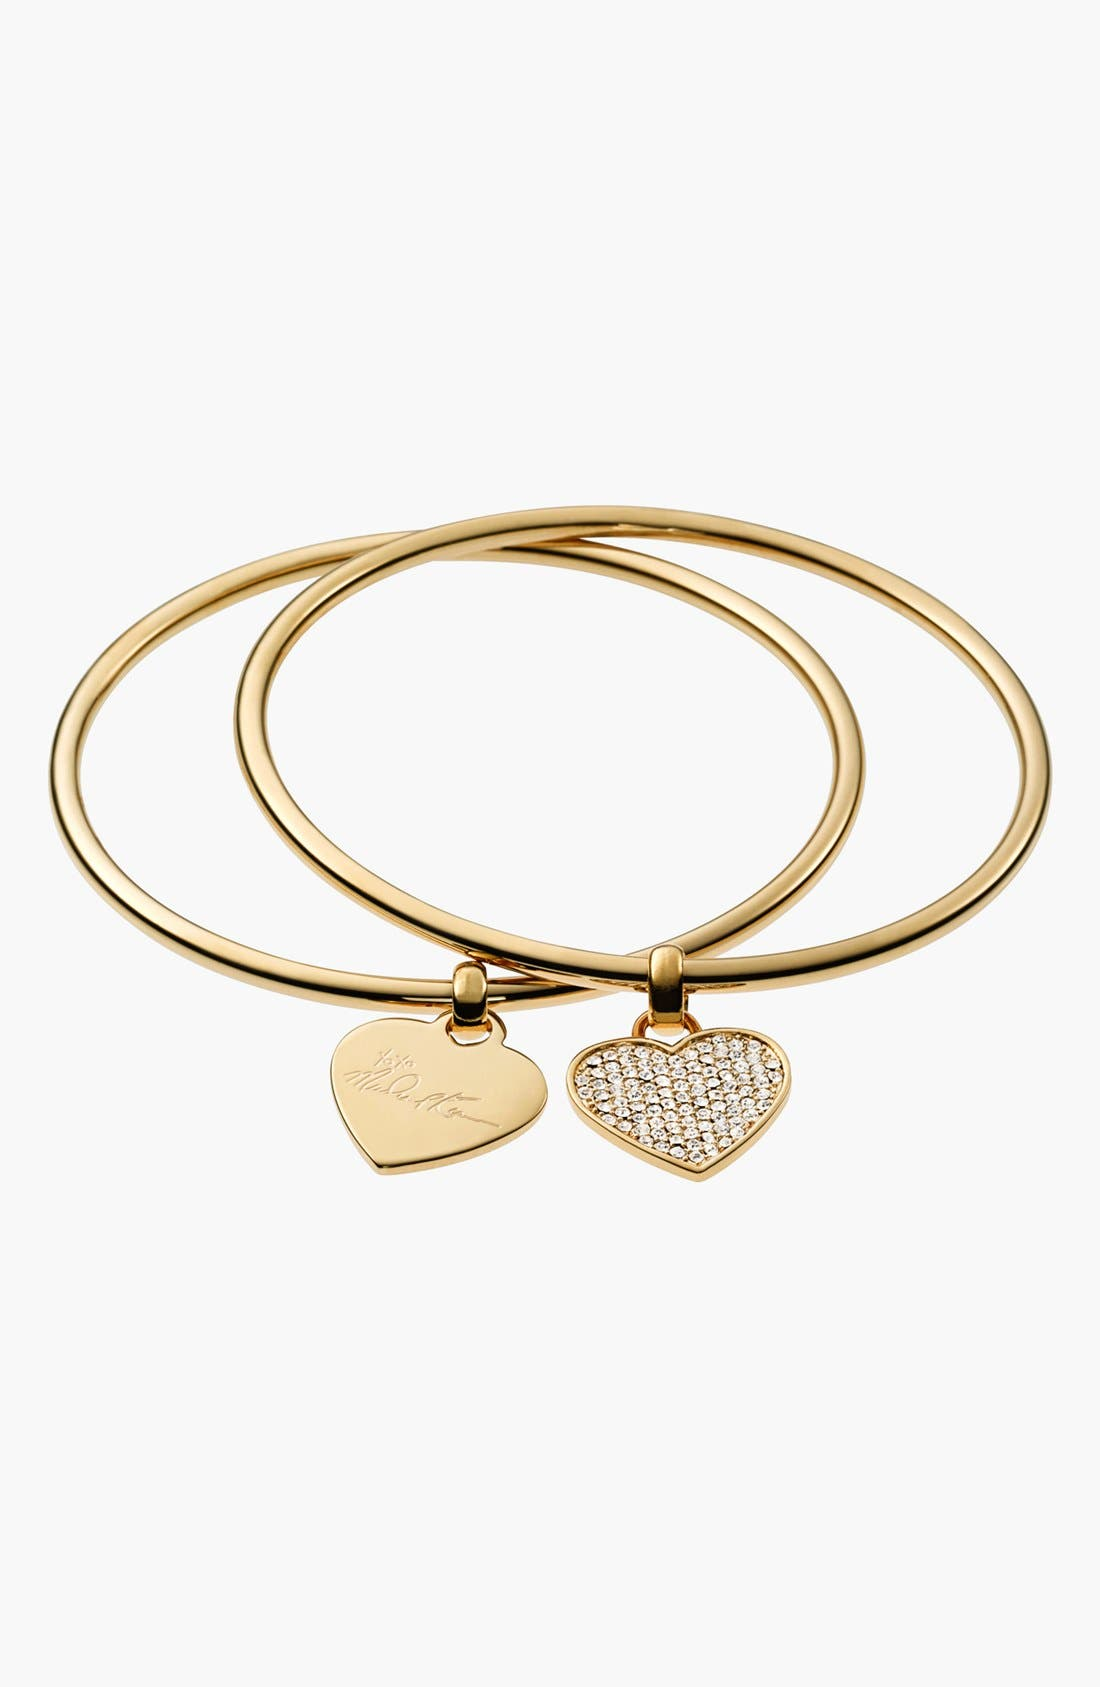 Main Image - Michael Kors Boxed Heart Charm Bangles (Set of 2)